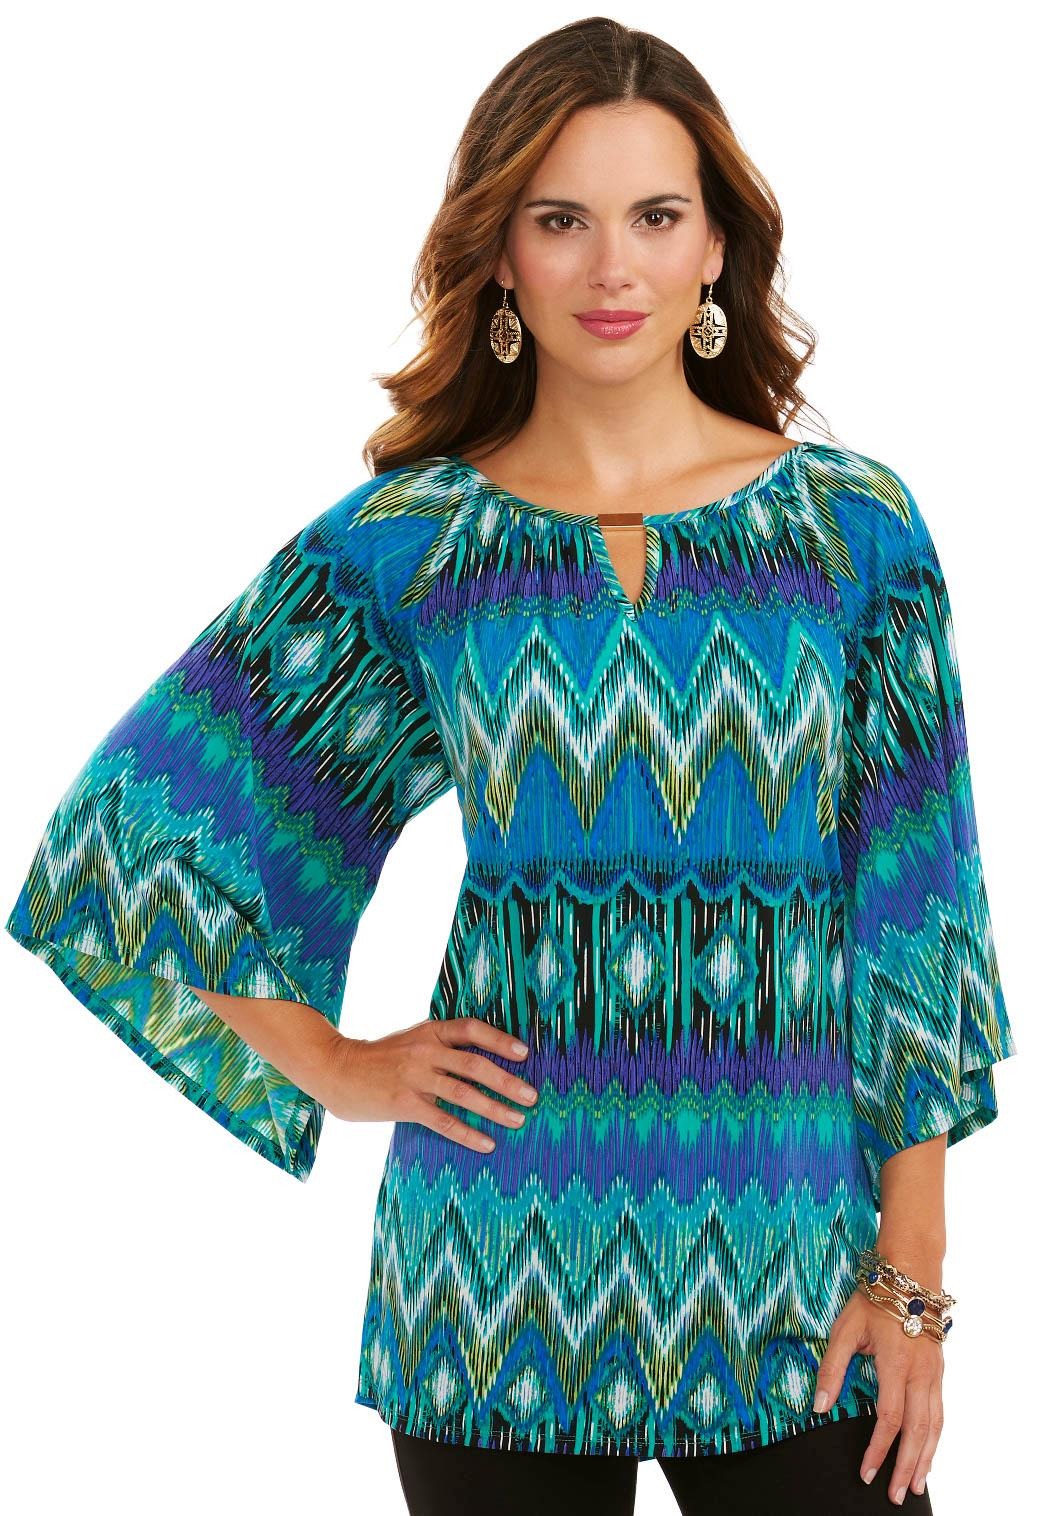 Cato Fashions Plus Size Angel Sleeve Lace Top Keyhole Chevron Tunic Top